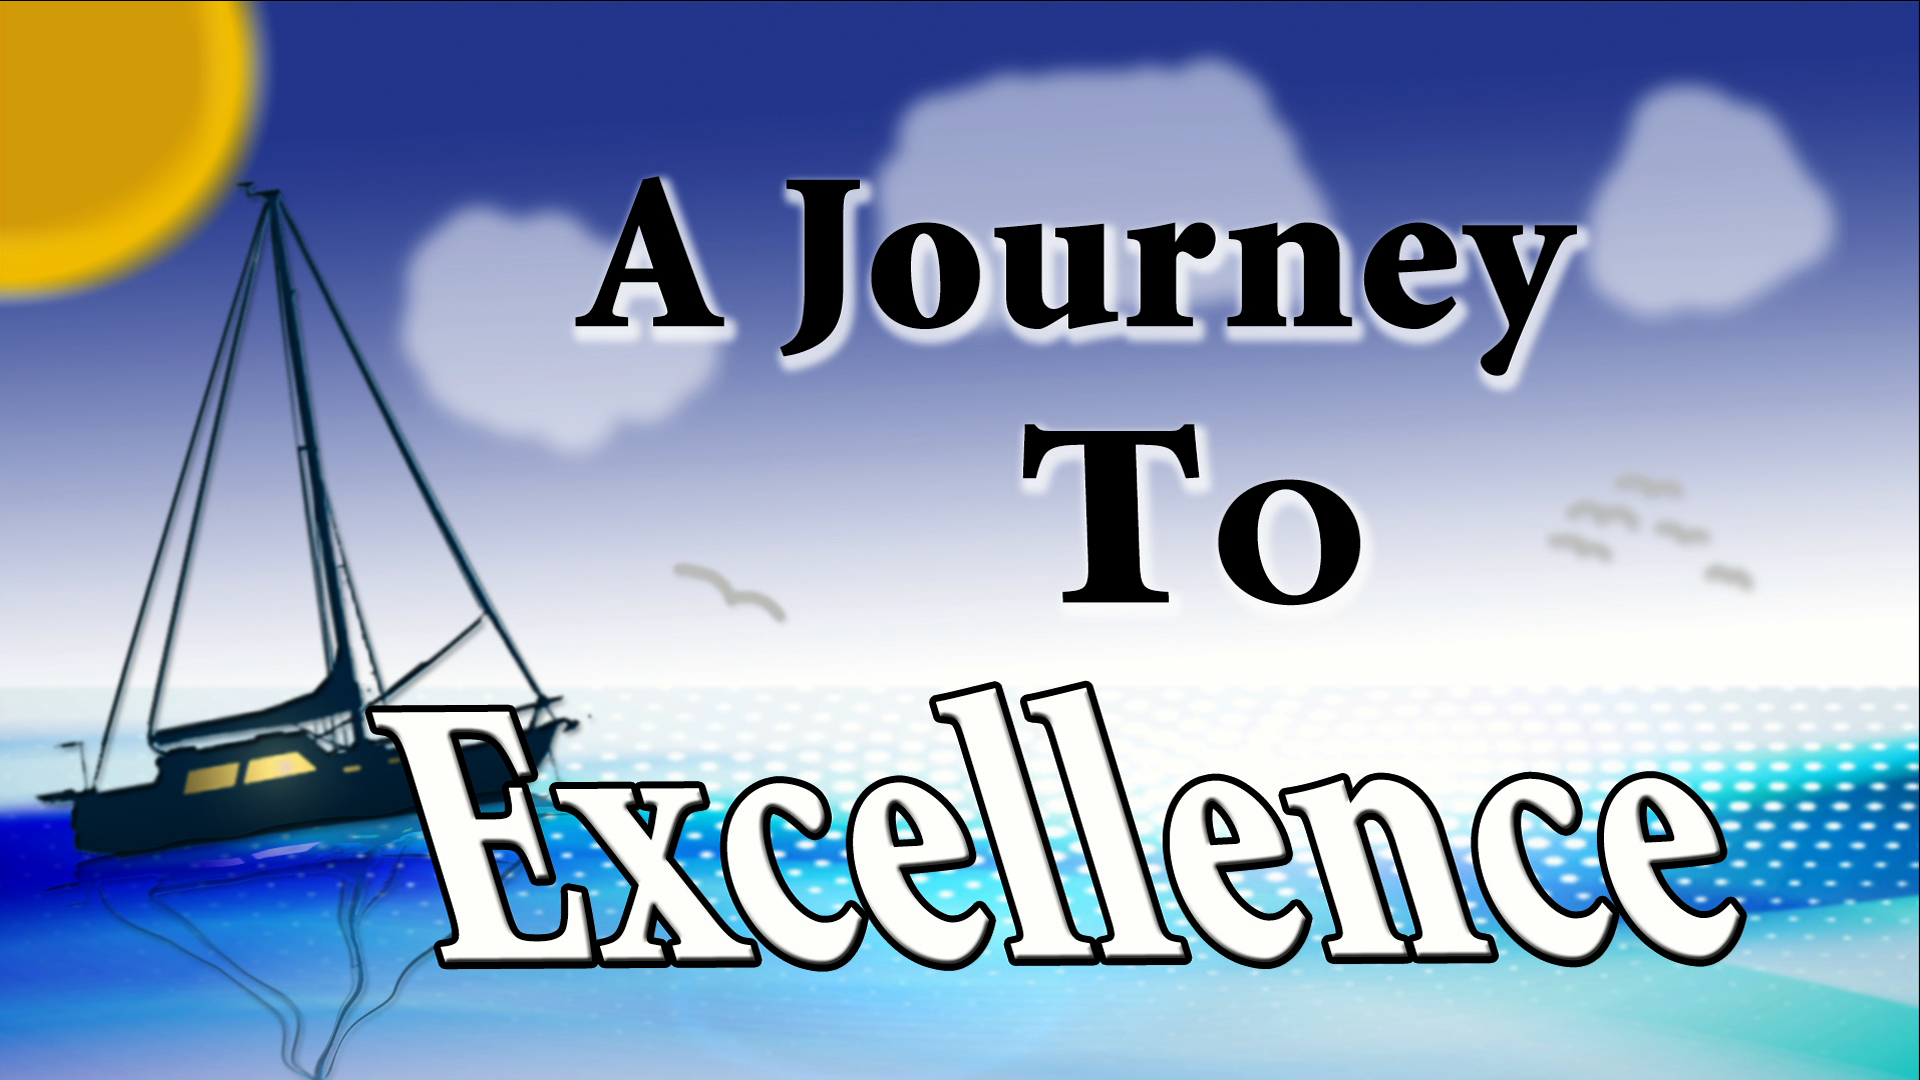 A Journey to Excellence – Peninsula Television, Inc.